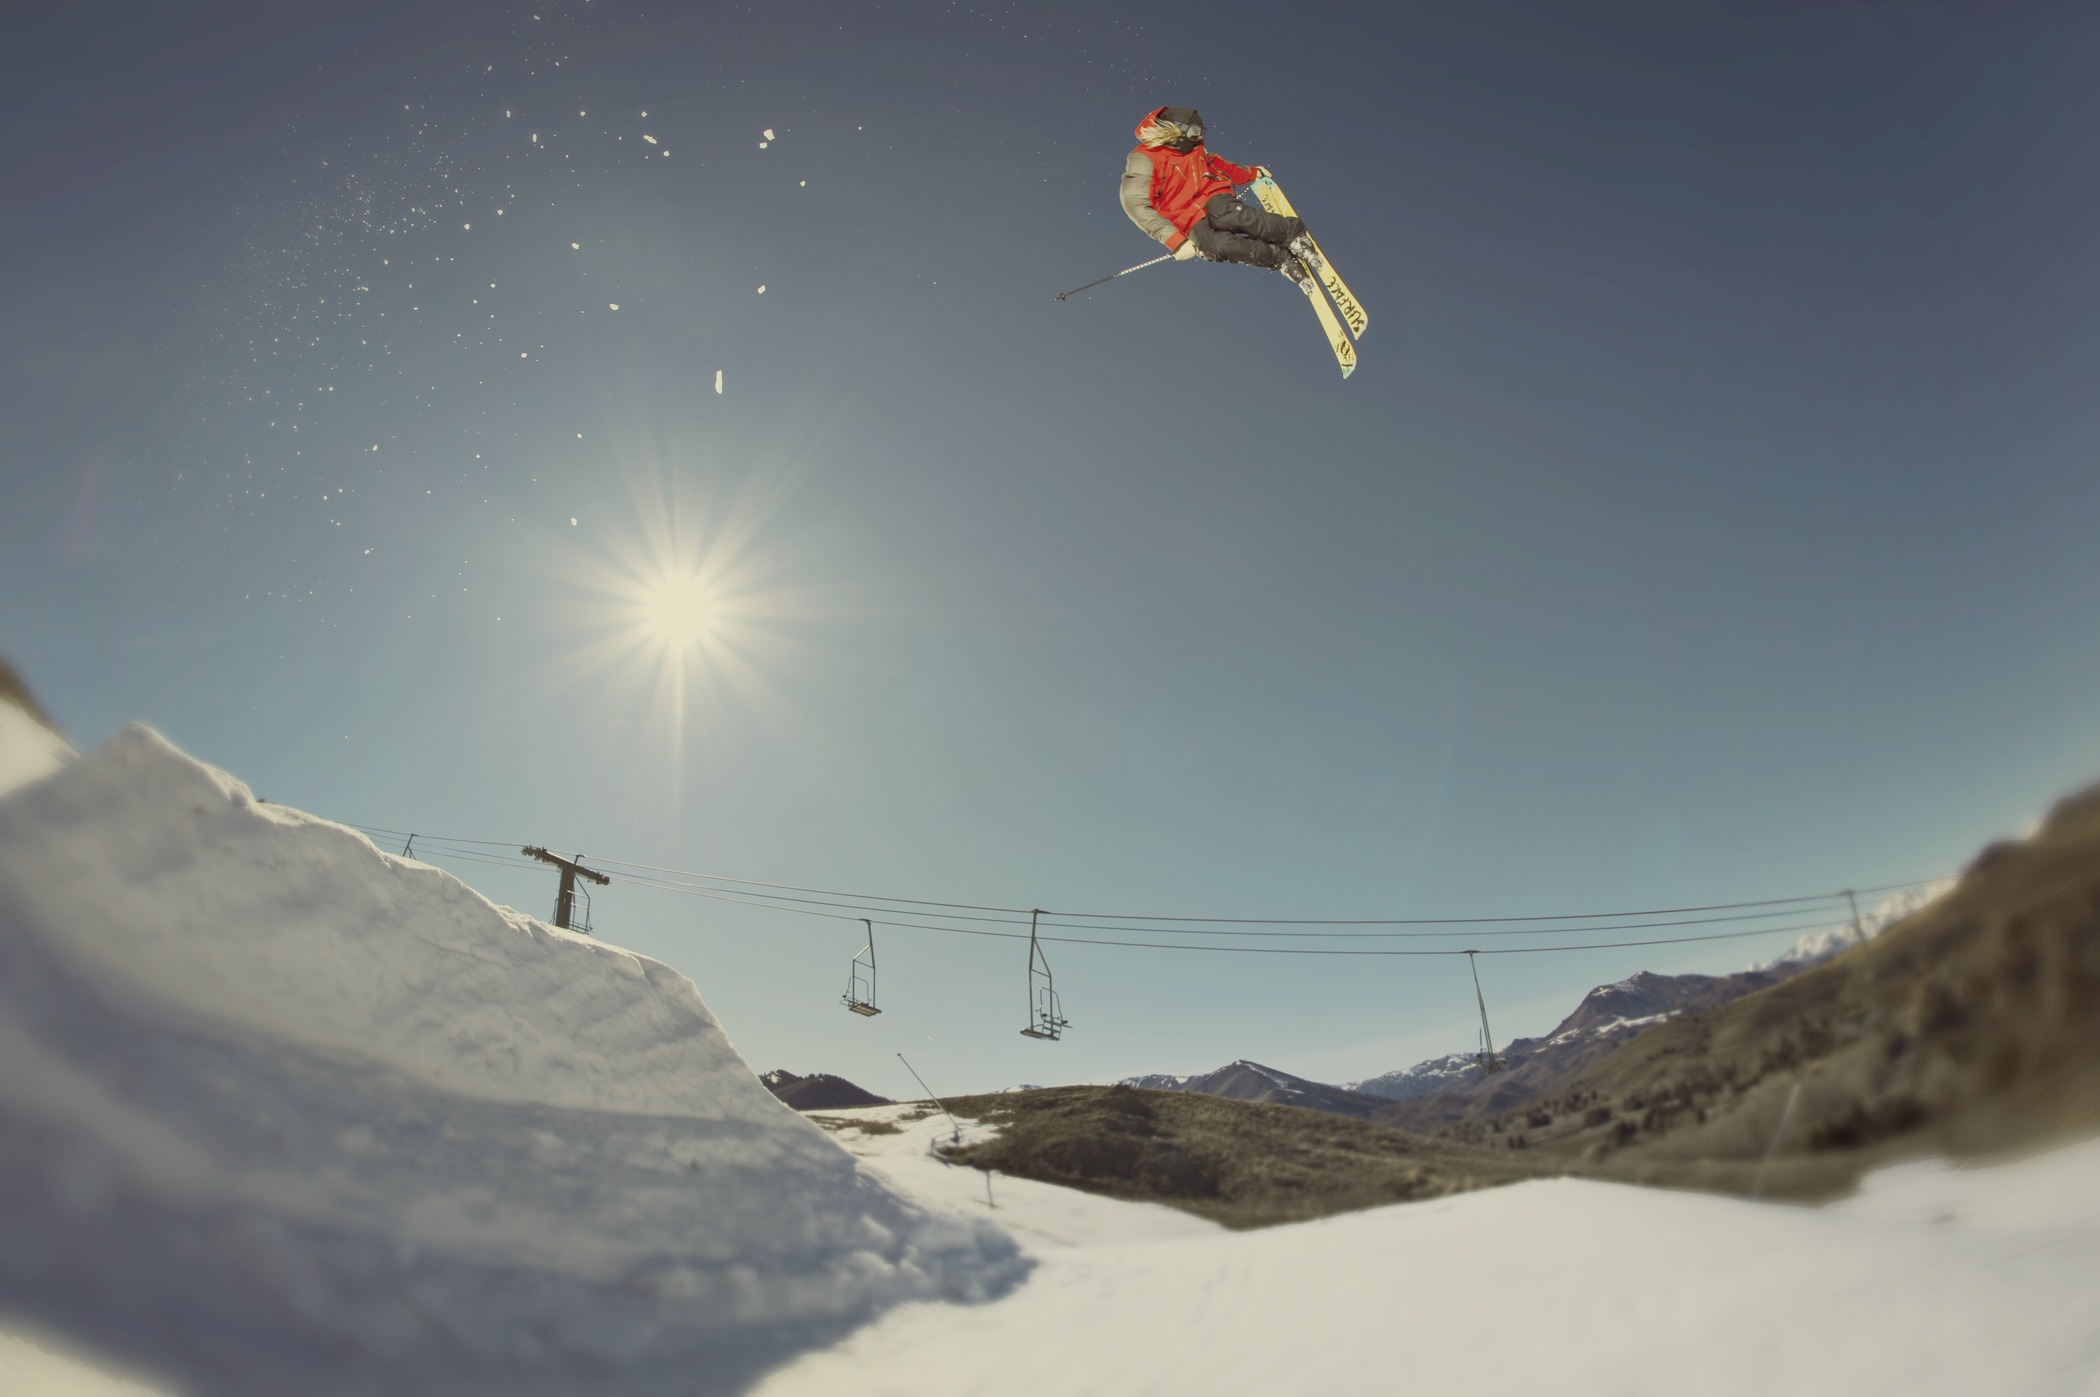 <p>A recent report shows that popularity in downhill skiing is declining, and a new sport called freeskiing is just taking off.</p>